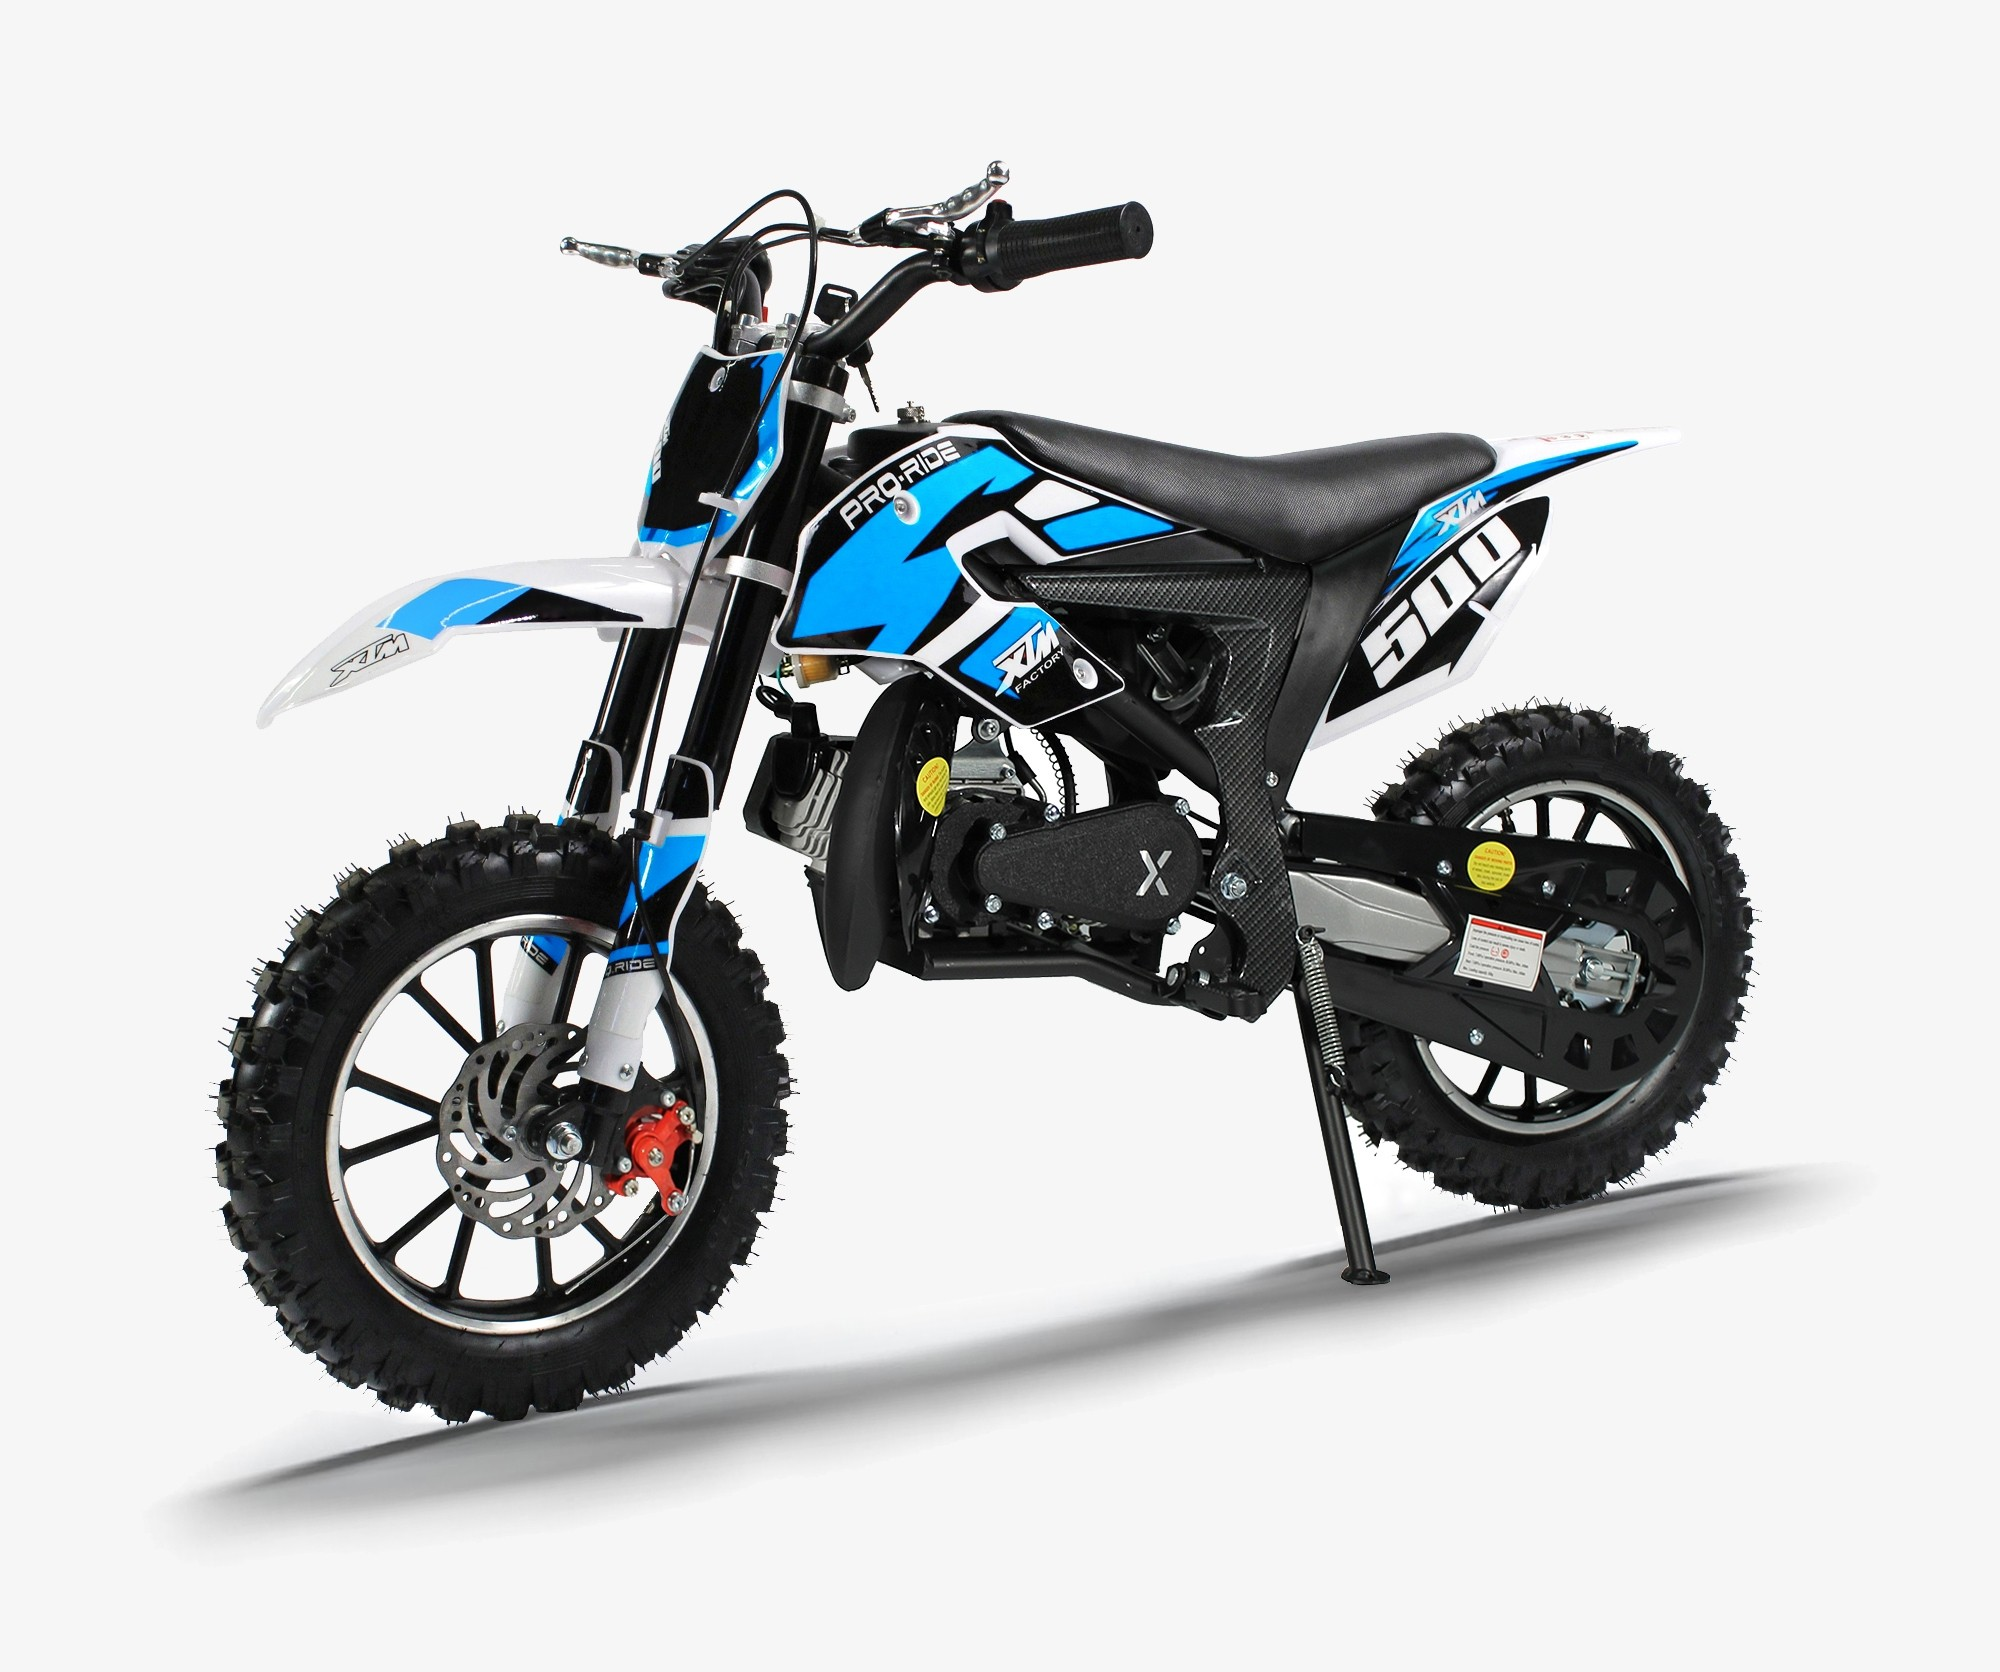 XTM PRO-RIDER 50cc DIRT BIKE BLUE